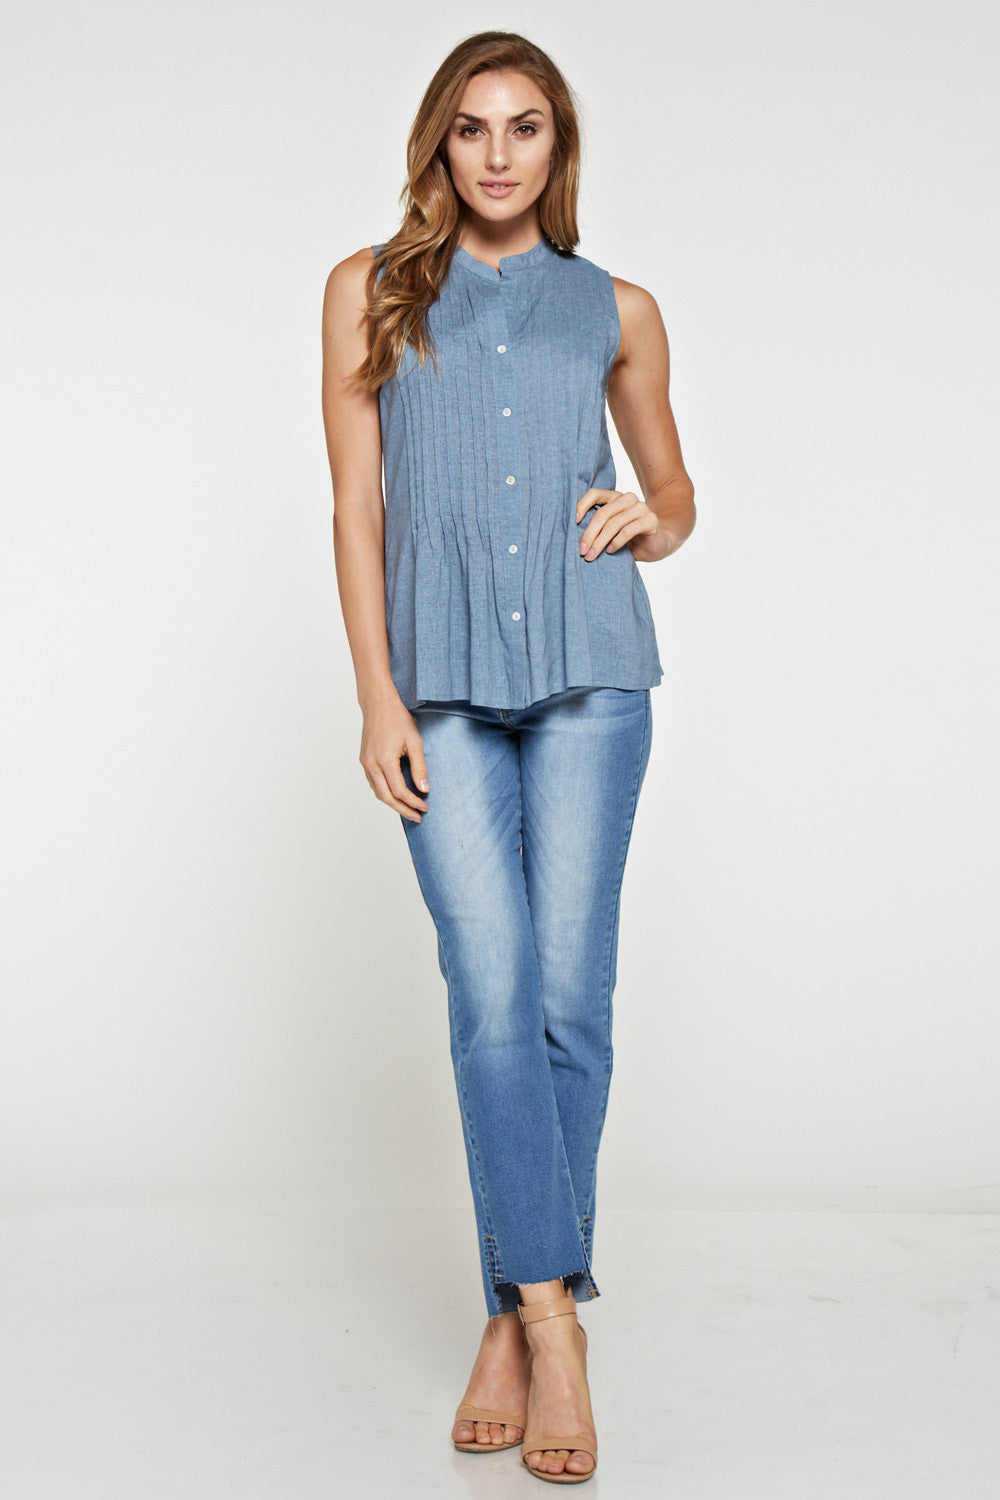 T2042 Denim sleeveless Blouse